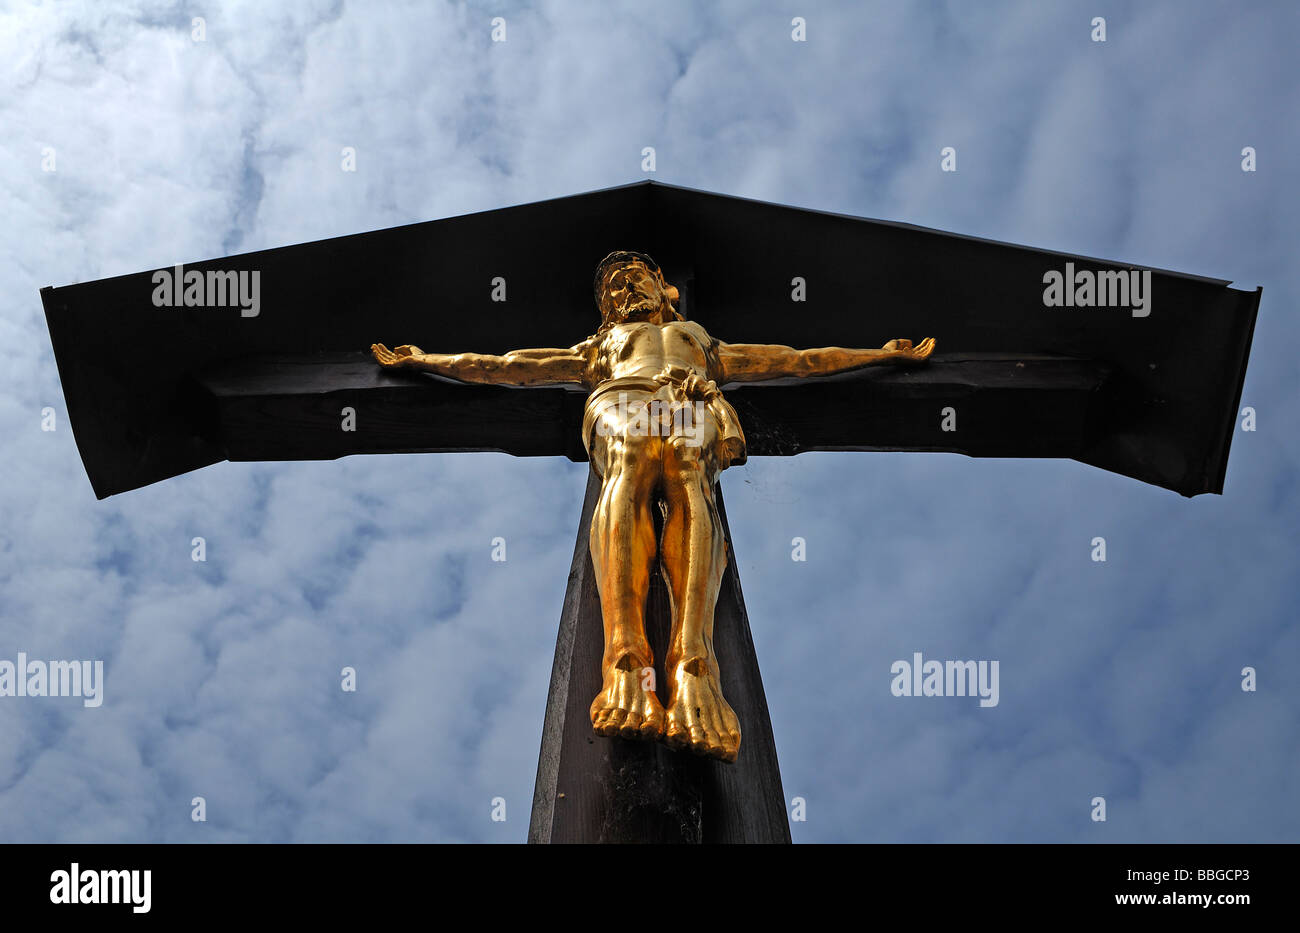 Gold Jesus on the cross against an overcast sky, Kinding, Upper Bavaria, Germany, Europe Stock Photo